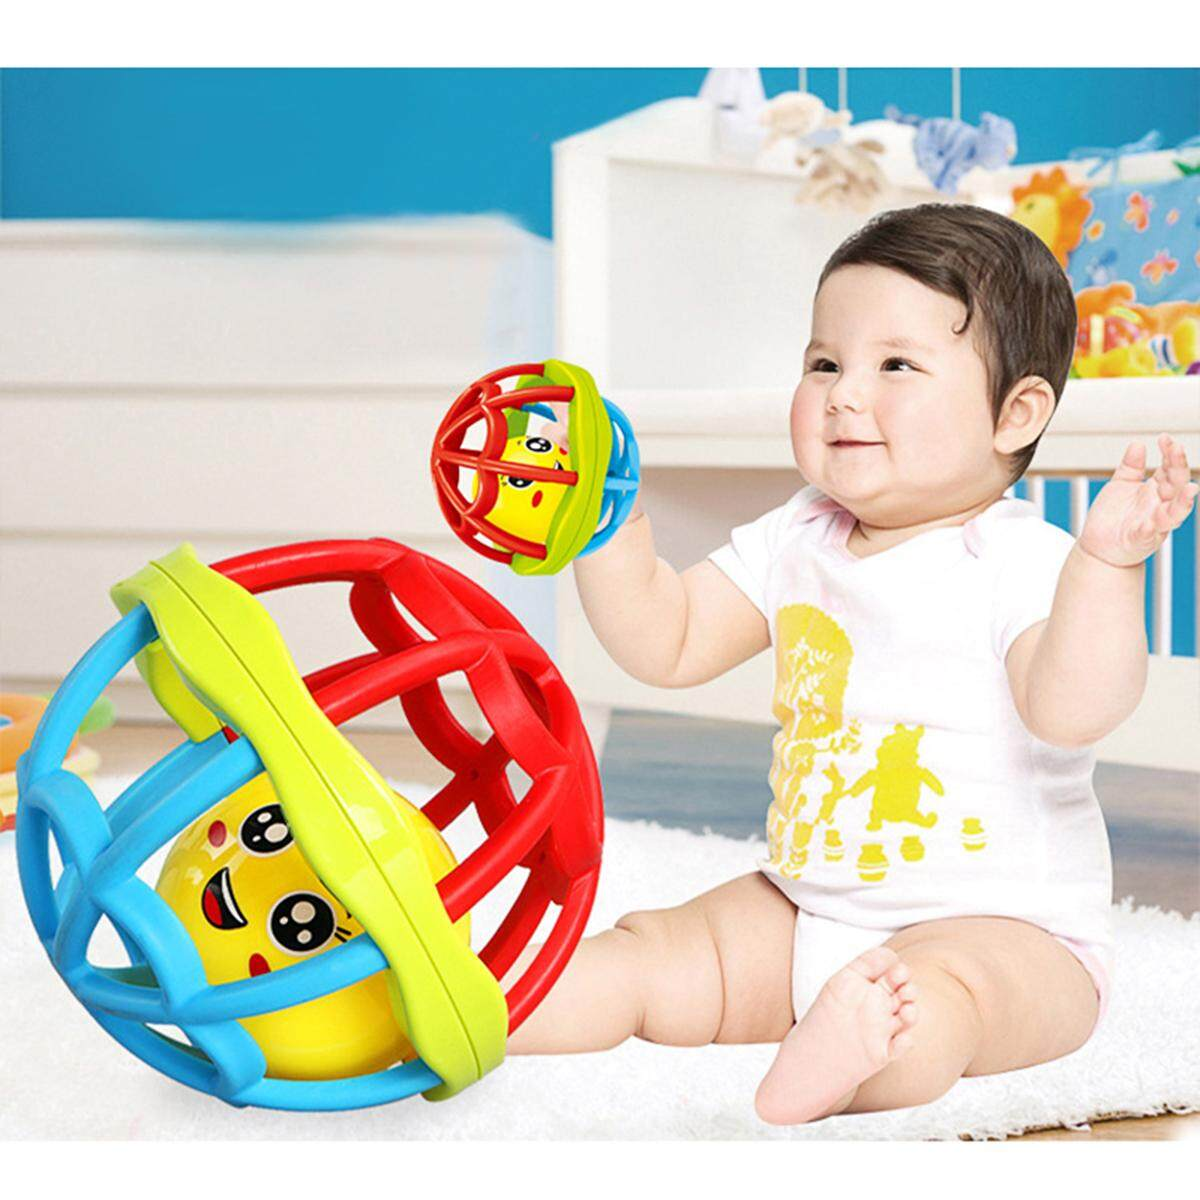 Baby & Toddler Toys Lovely Animal Shape Hand Baby Rattles Mobiles Baby Toys Develop Intelligence Hand Grasping Rattle Educational Toy Random Color